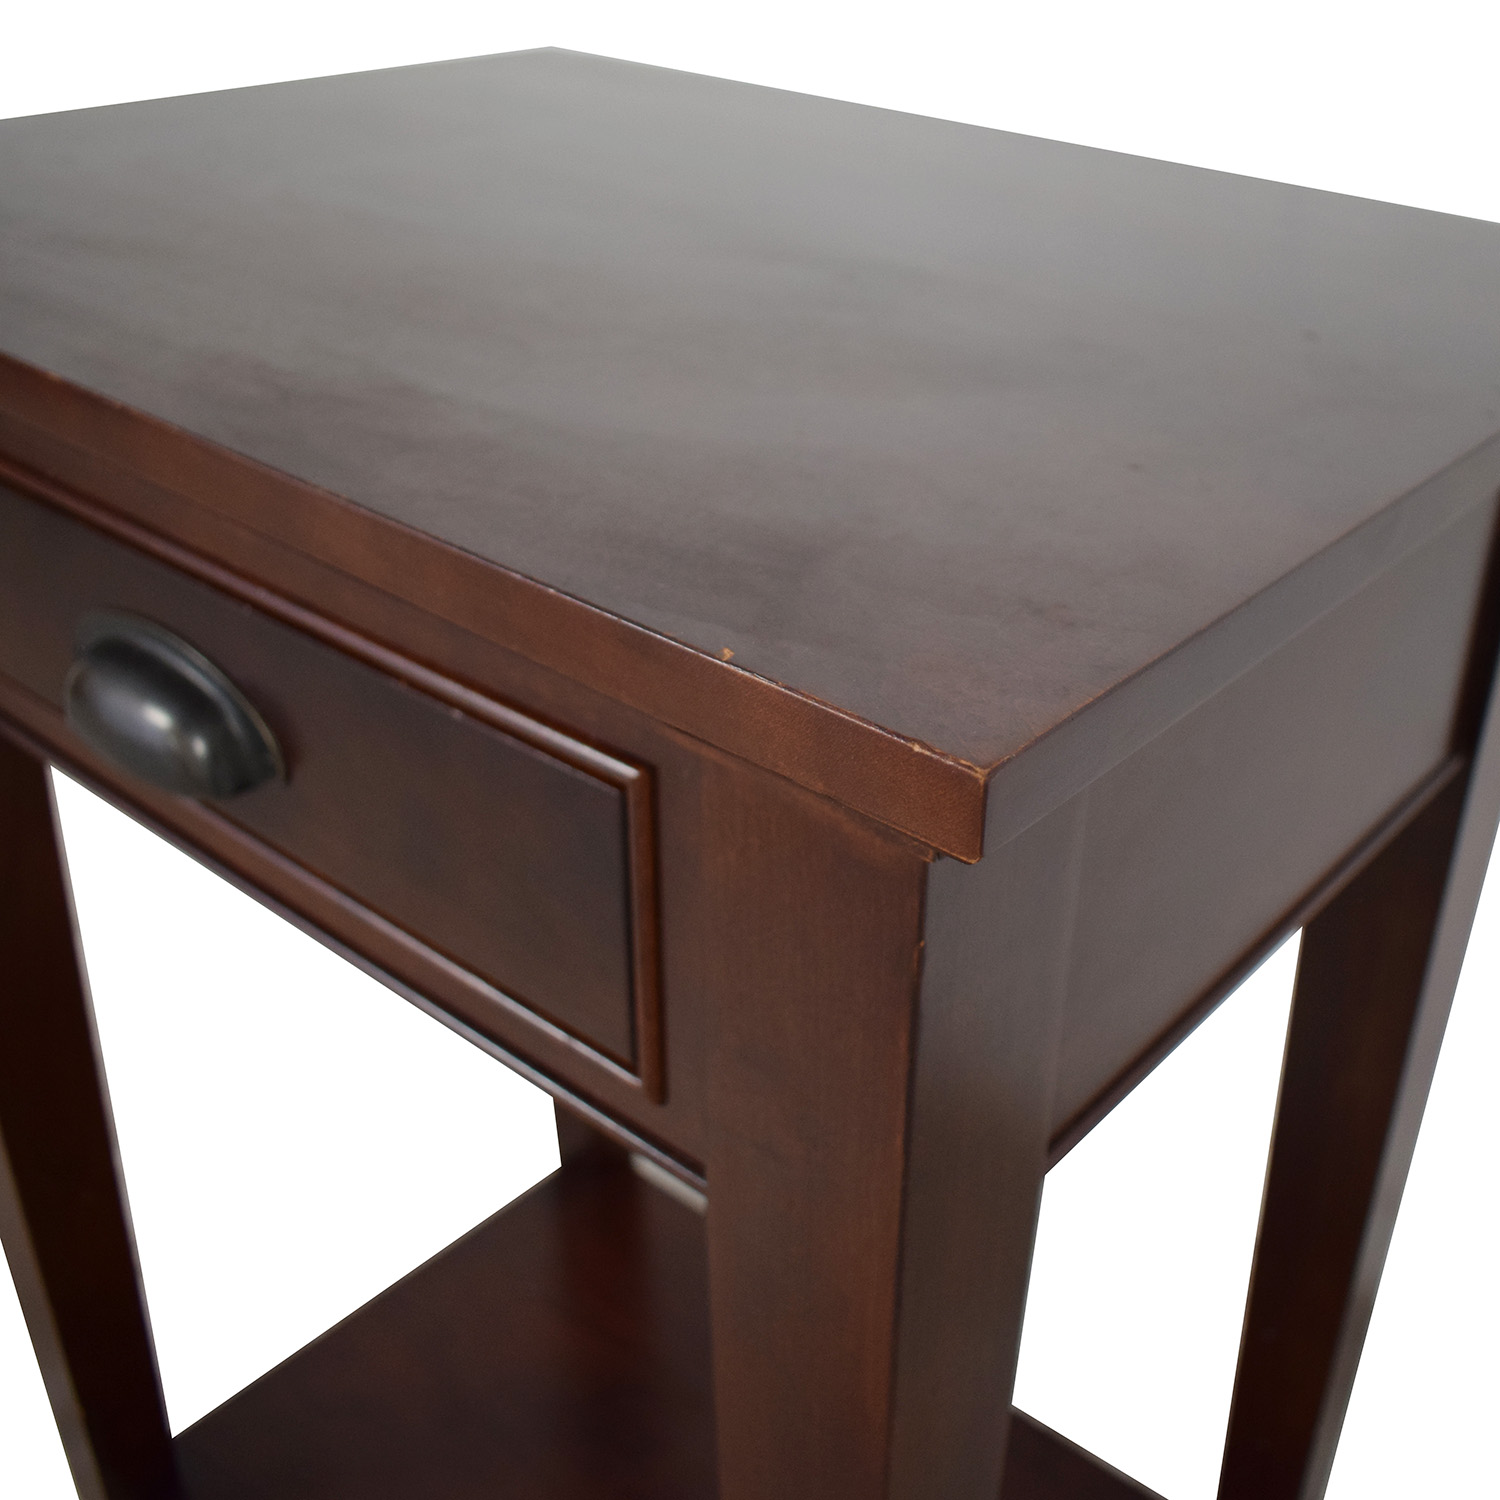 Restoration Hardware Restoration Hardware Marston 1-Drawer Nightstand used